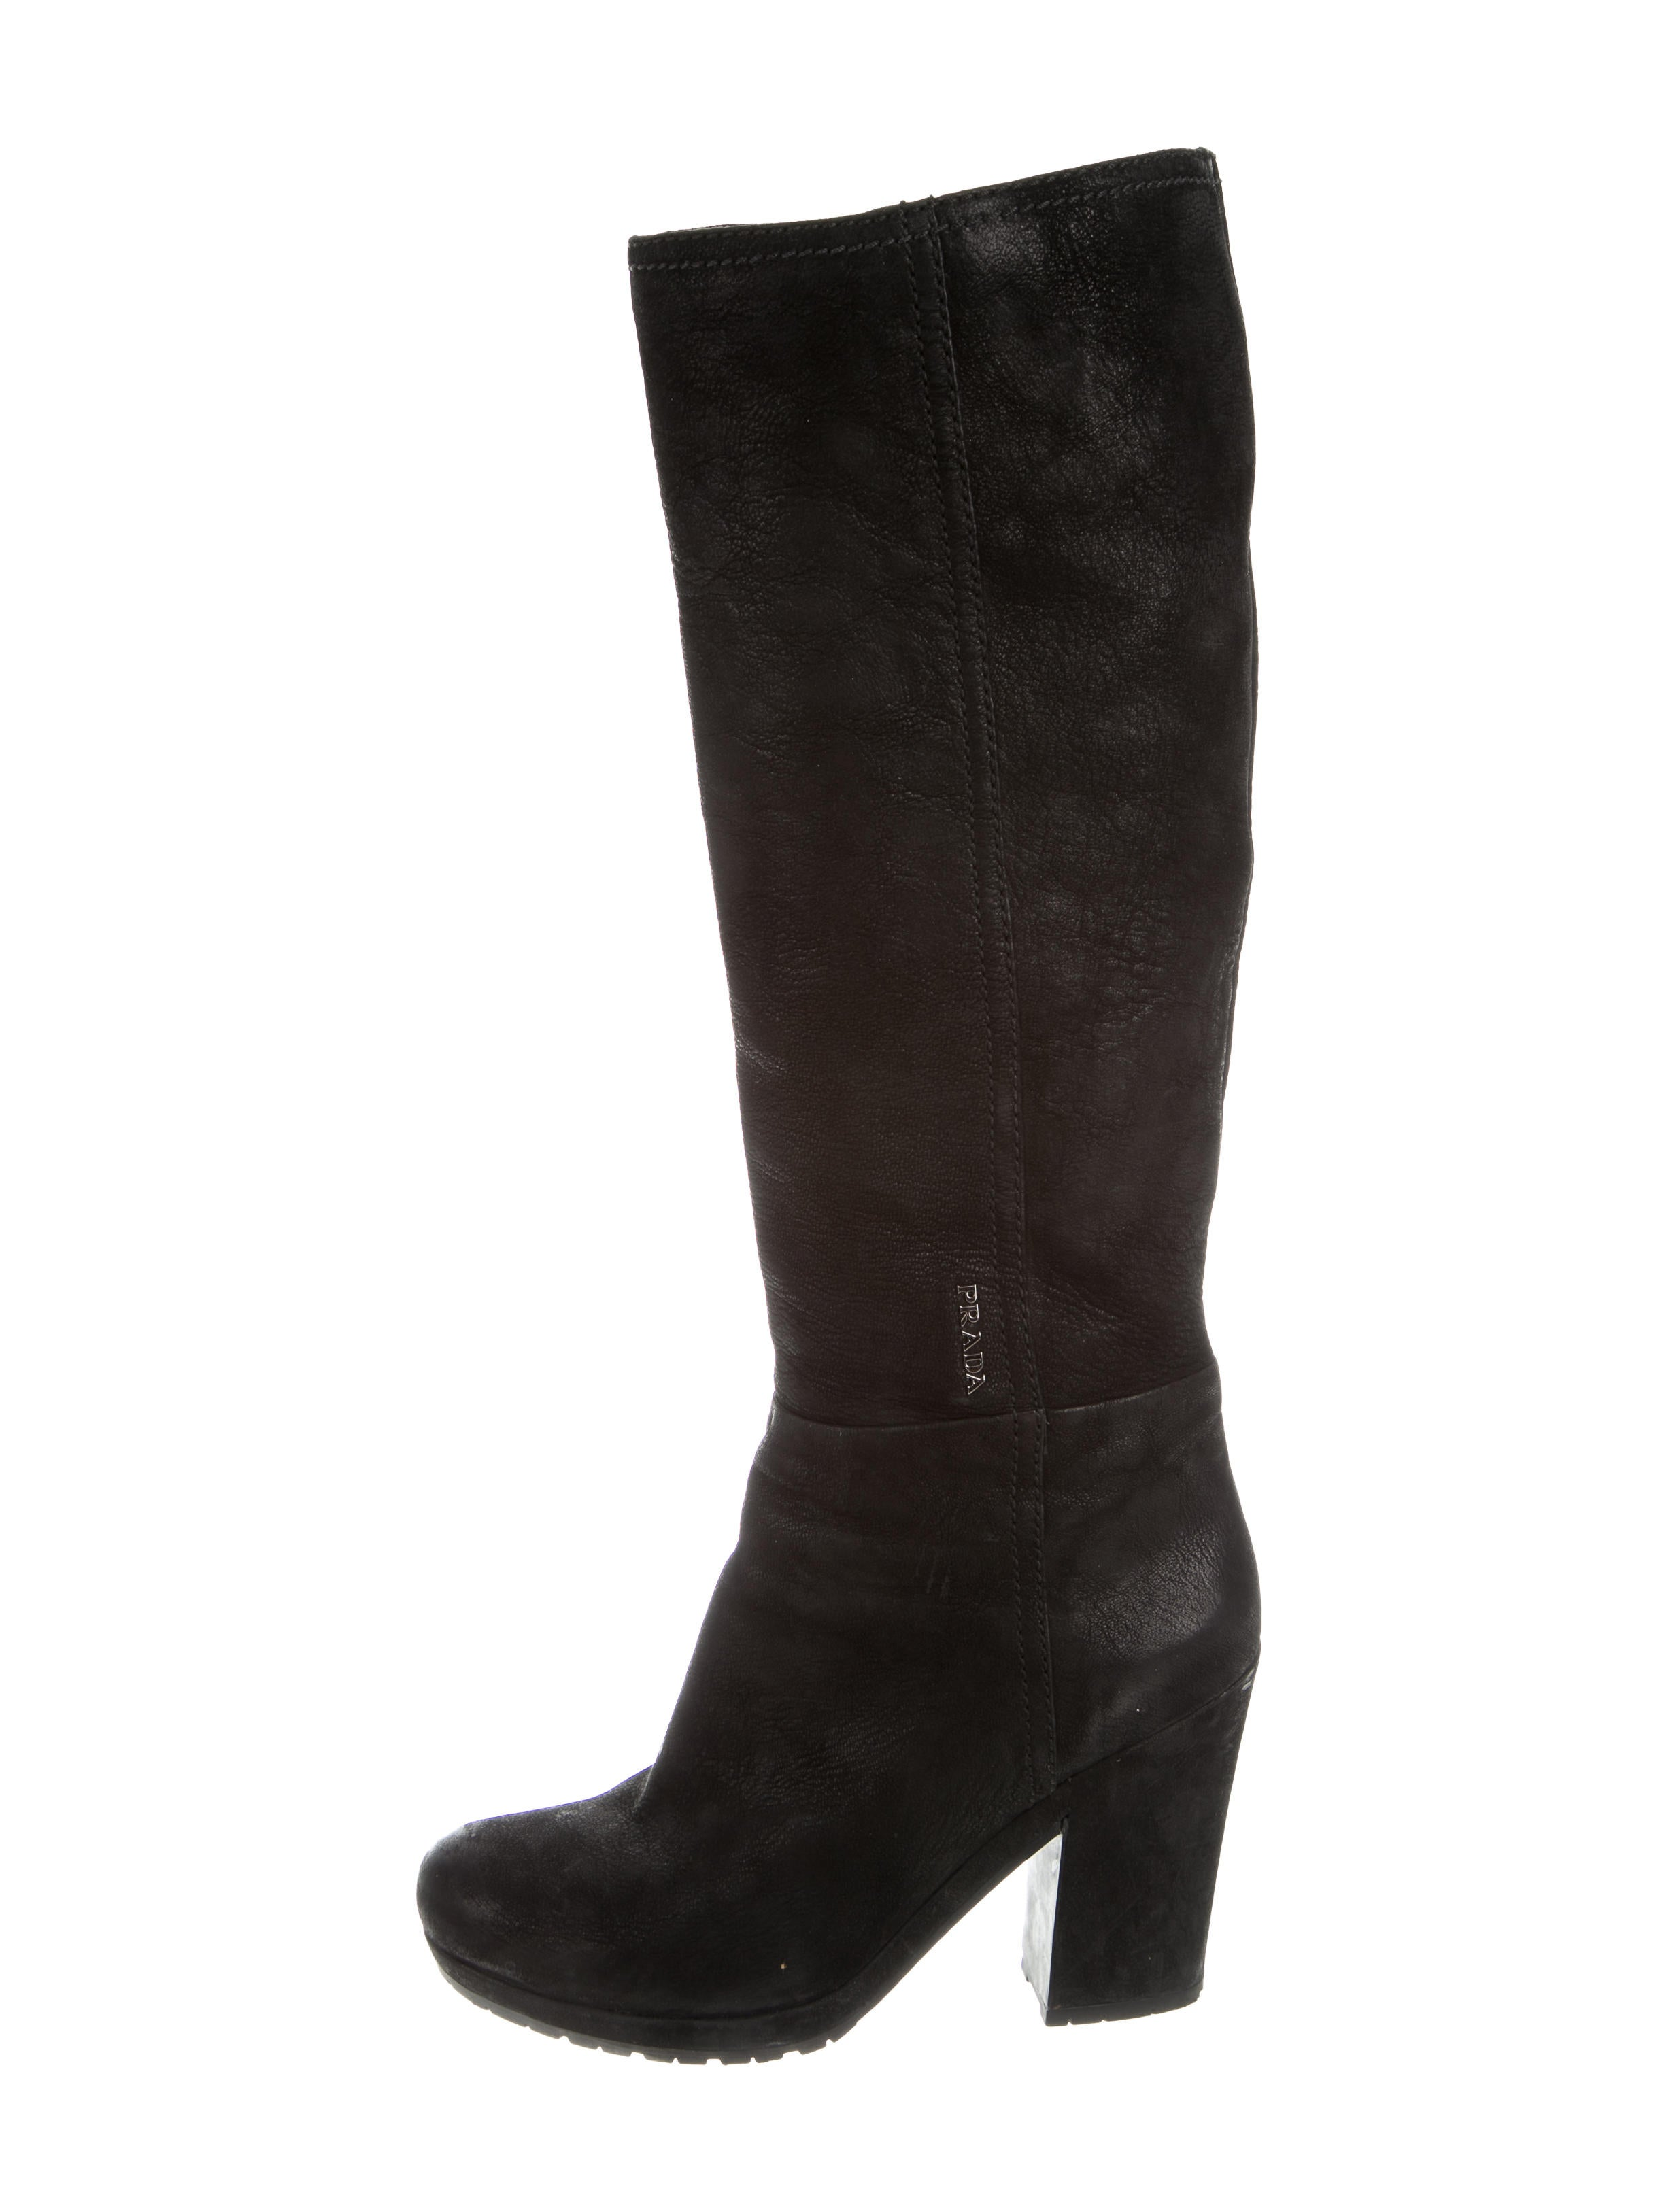 prada leather knee high boots shoes pra155712 the